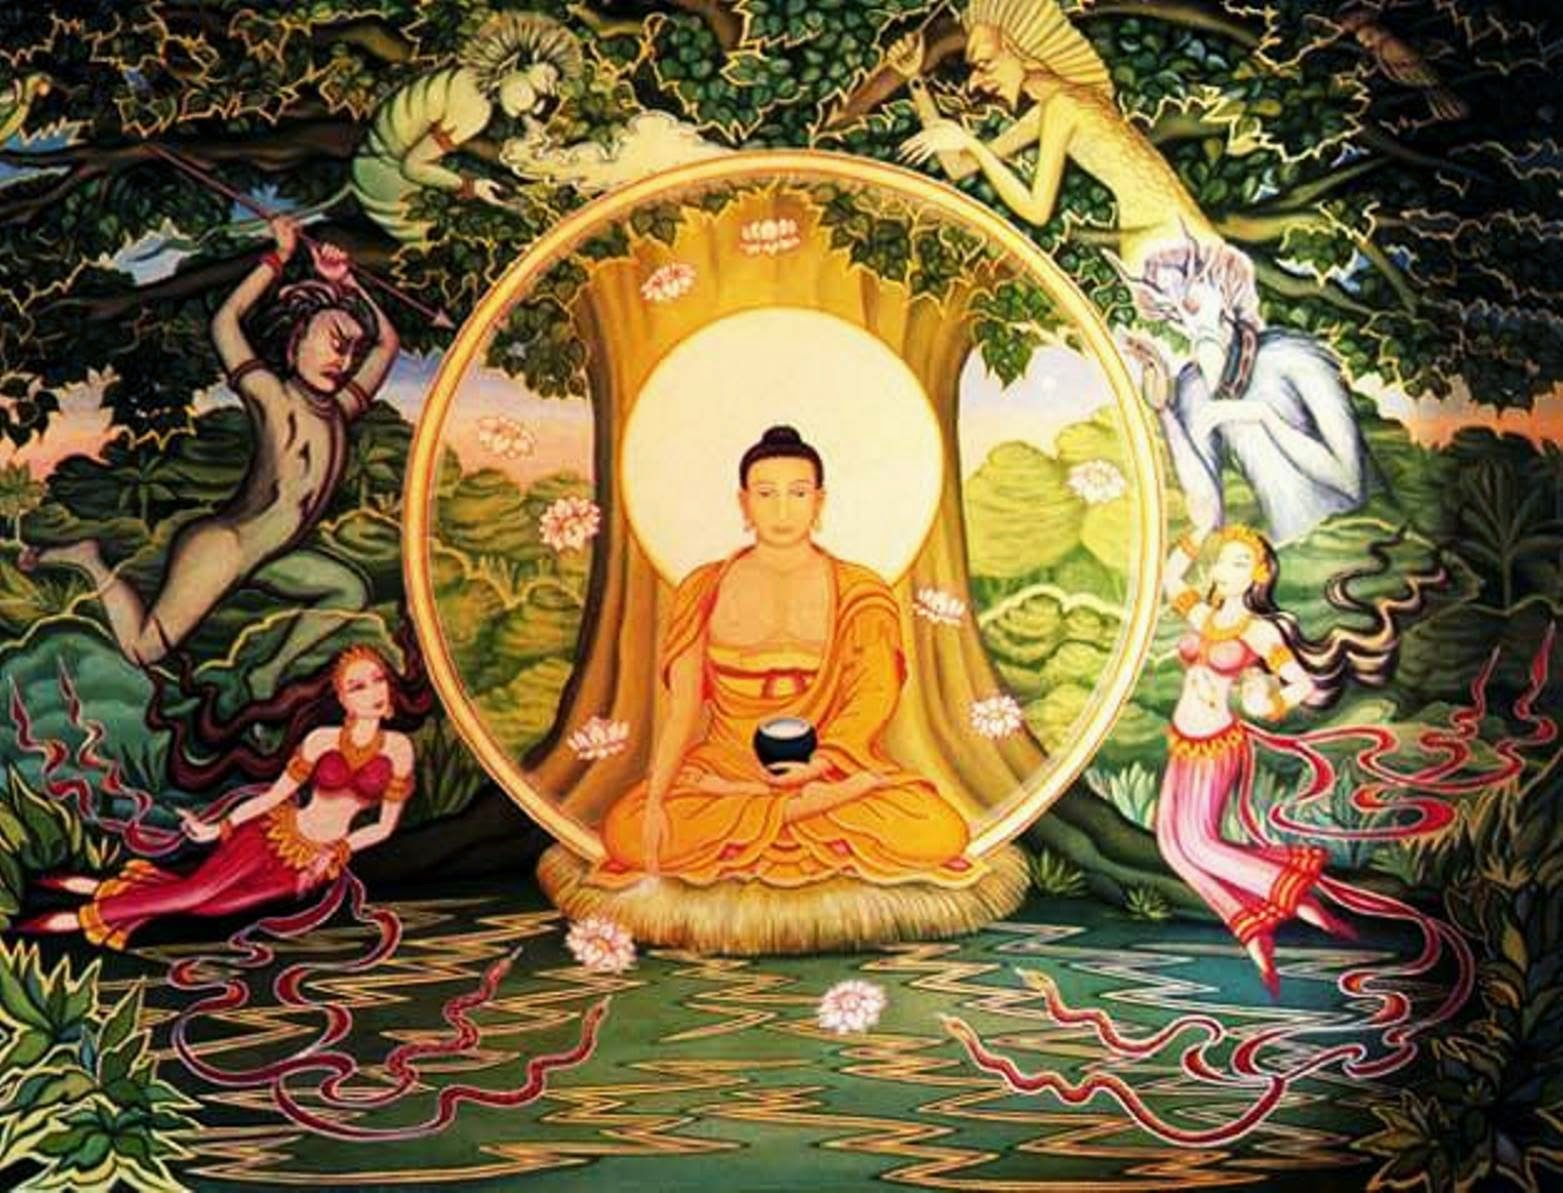 enLIGHTenment-suggests-that-this-higher-consciousness-has-something-to-do-with-light.jpg